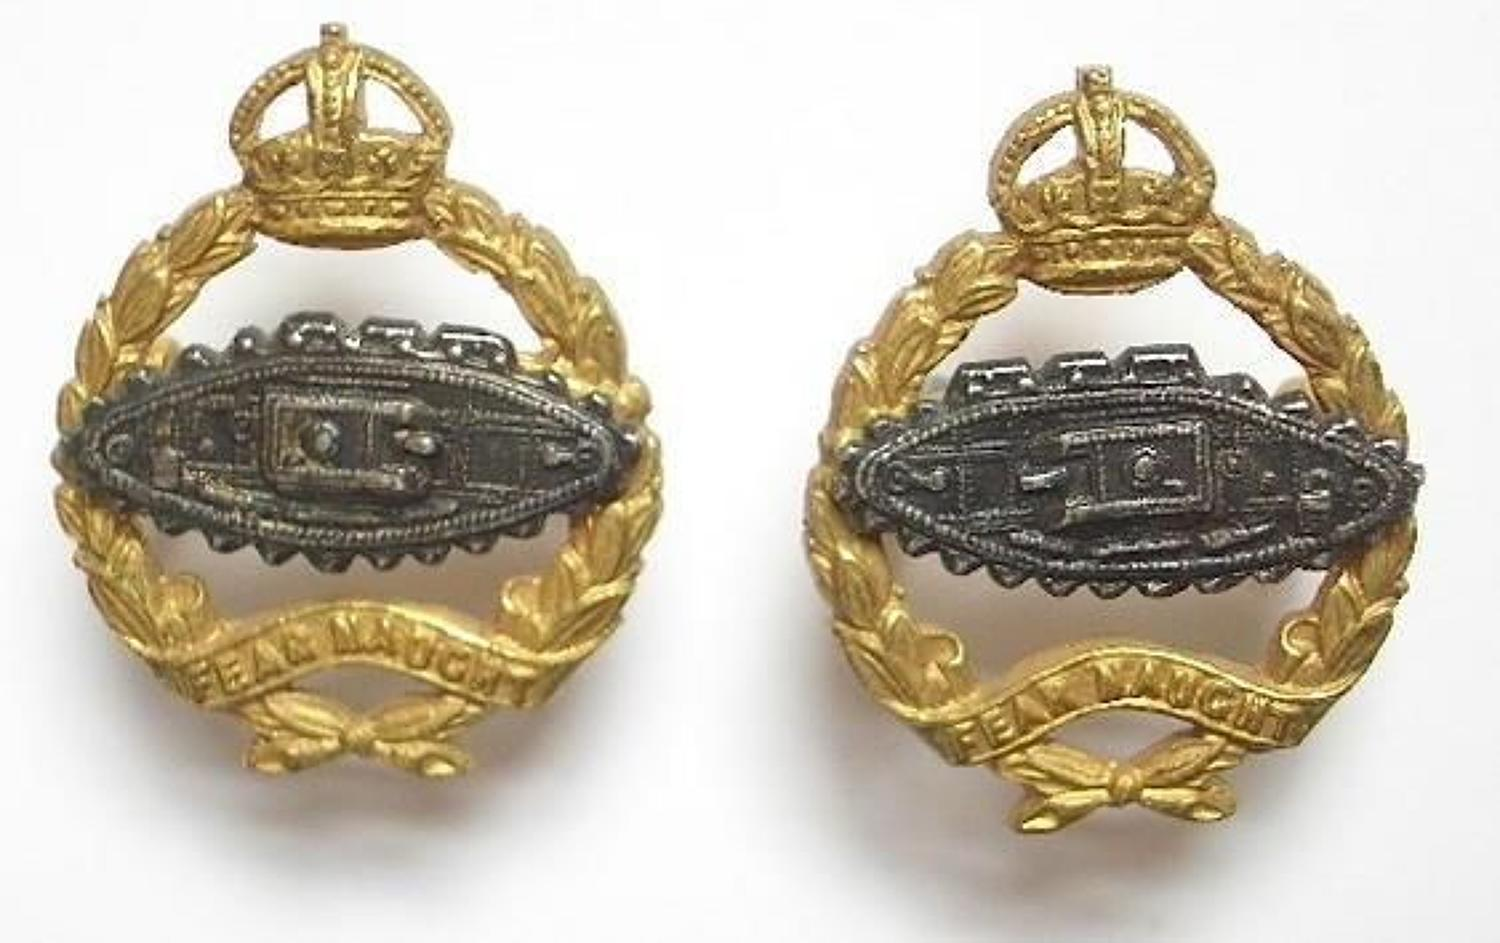 Royal Tank Corps / Regiment scarce facing pair of Officer's collar bad